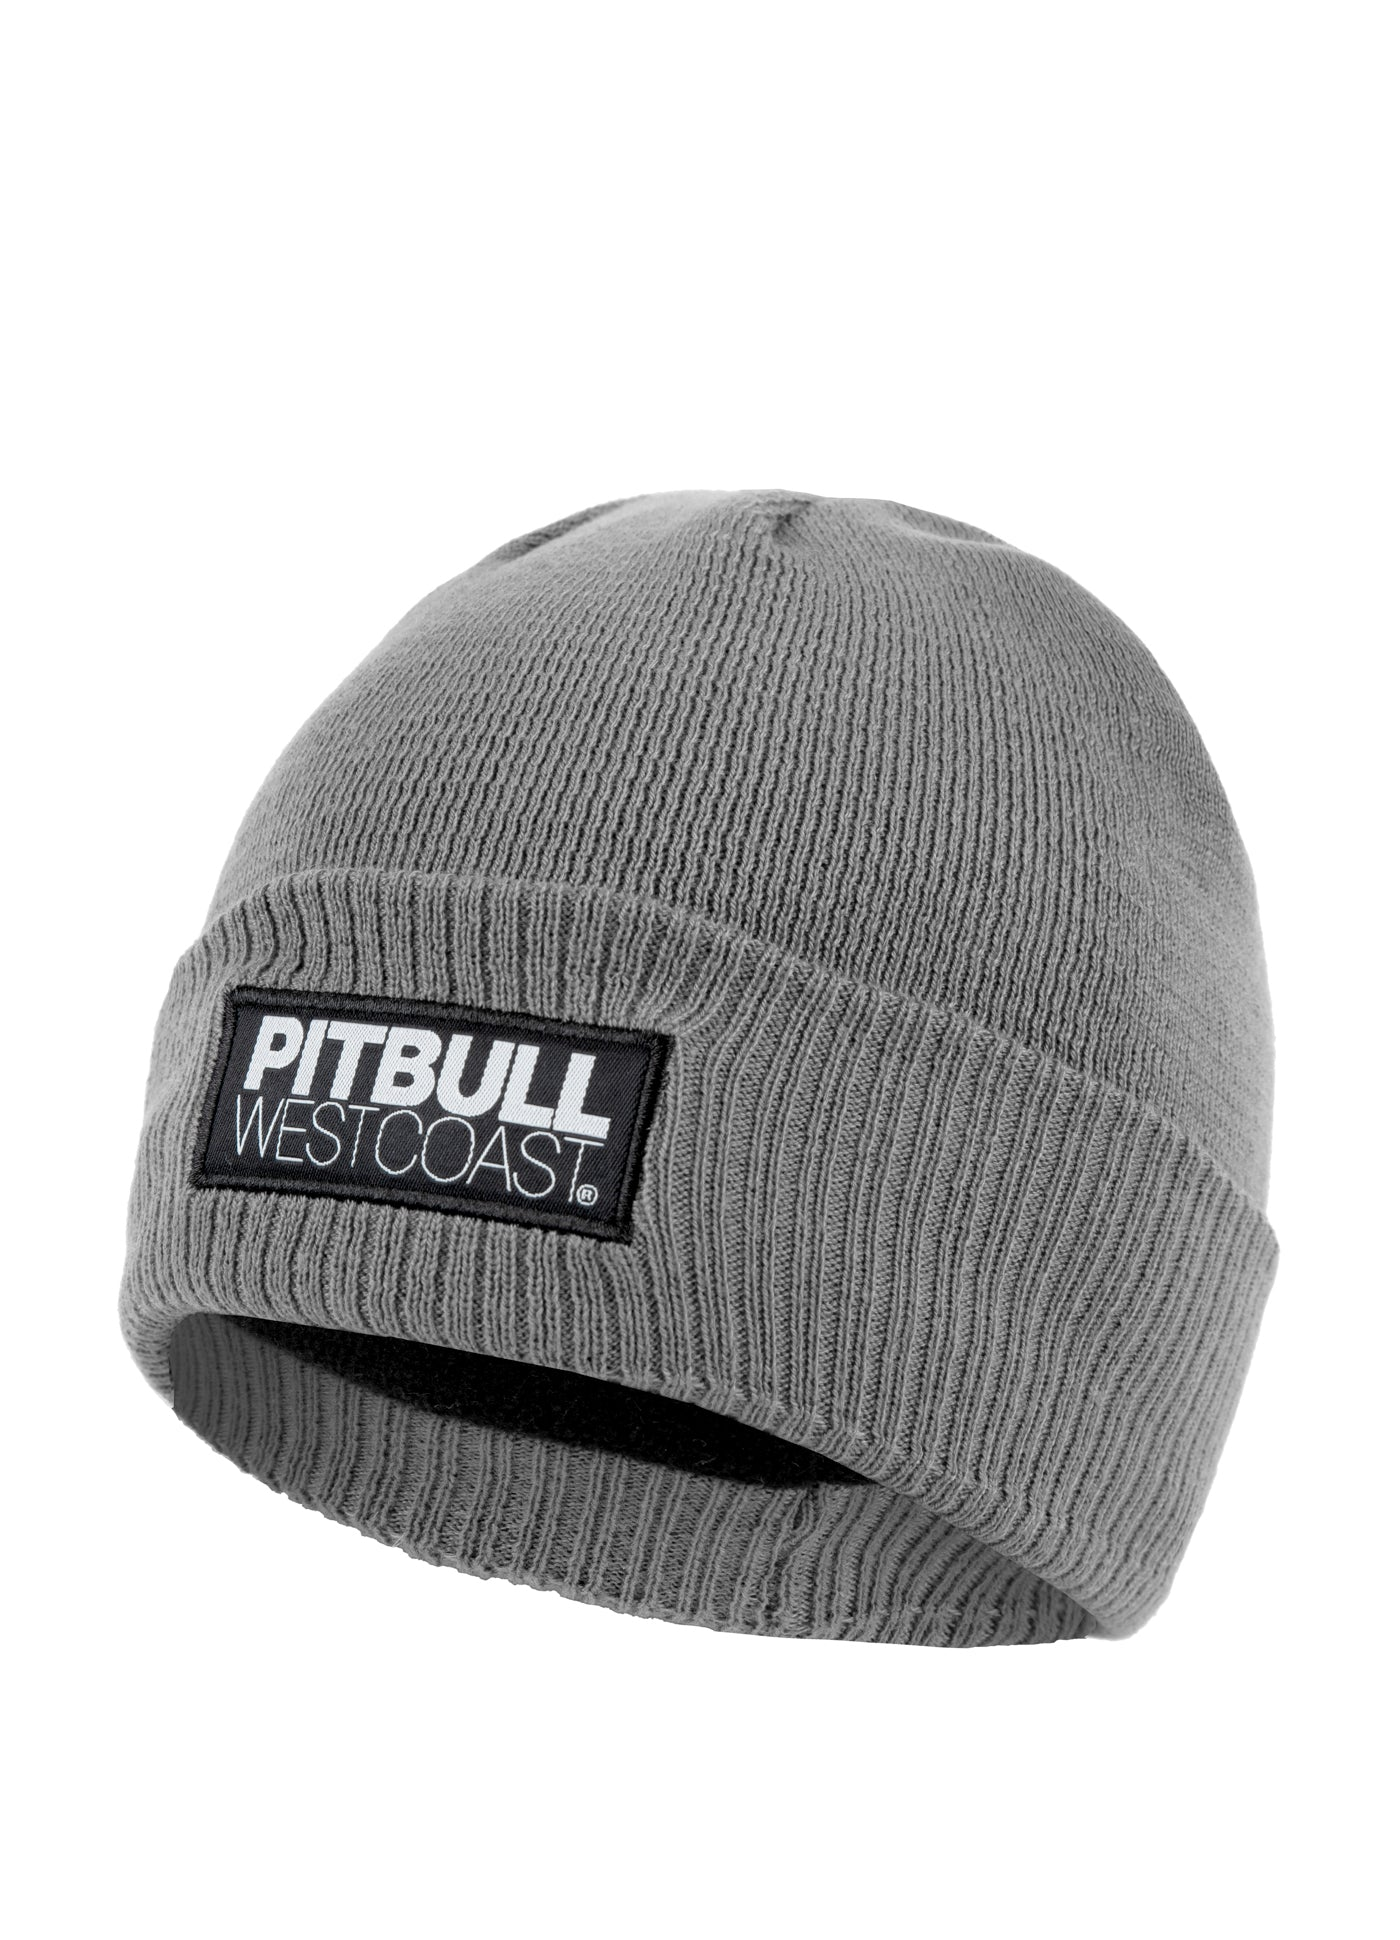 TNT Winter Beanie Grey - Pitbull West Coast  UK Store